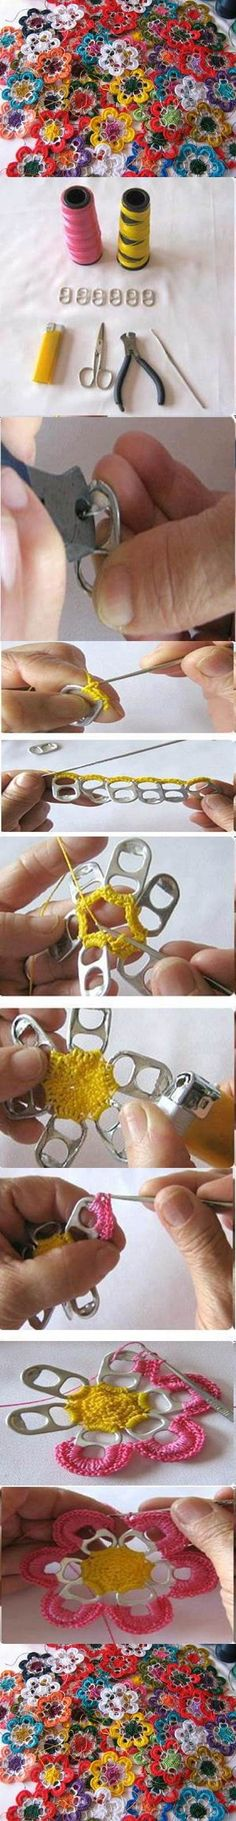 @Janae Daigle DIY Pull Tabs Crochet Flowers flowers  Thought you'd like this